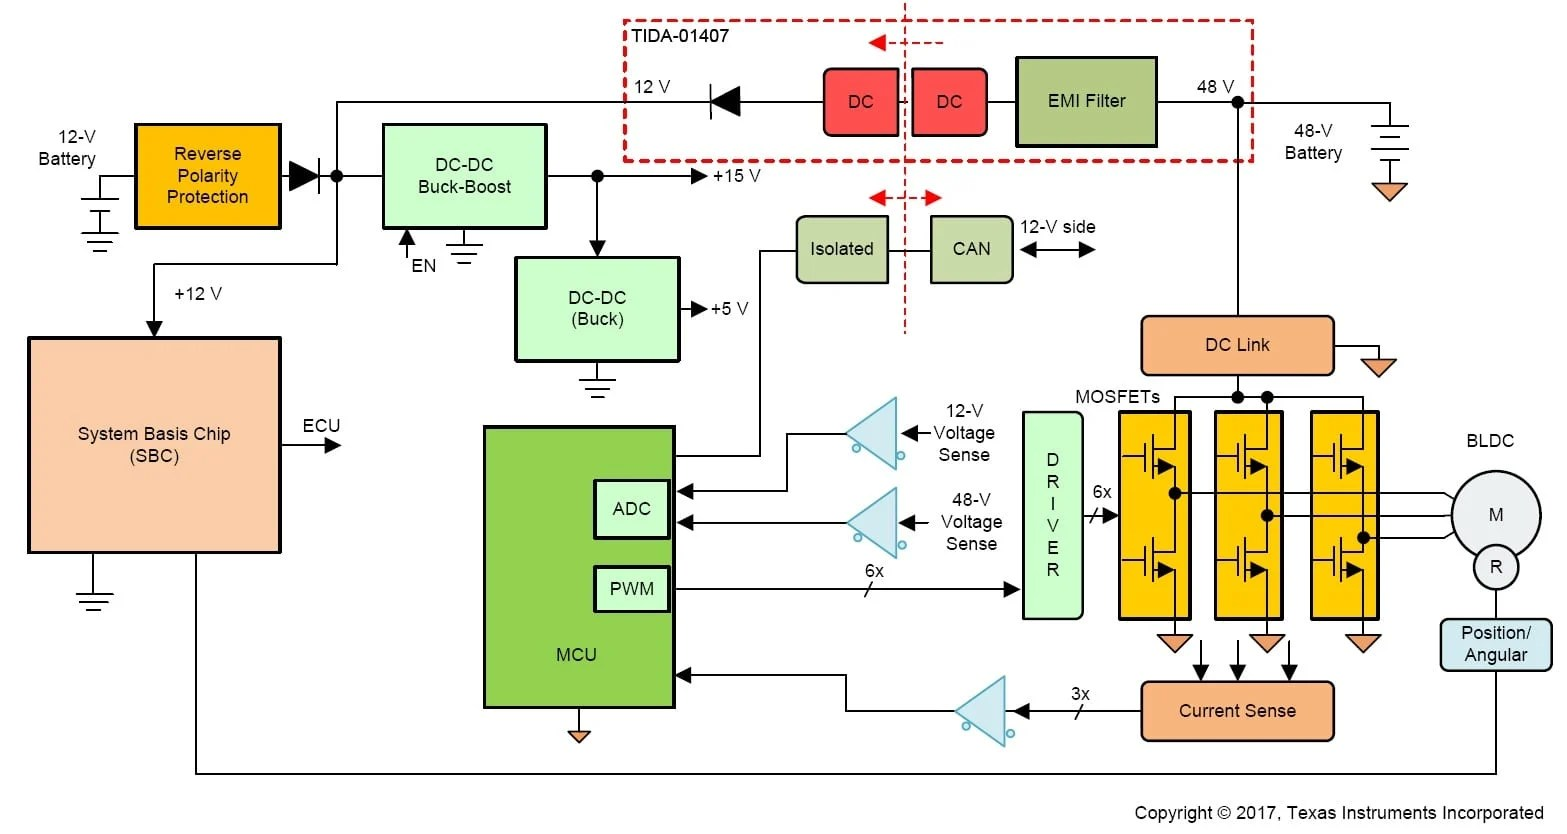 hight resolution of system block diagram of 48 v battery driven inverter and implementation of tida 01407 click on image to enlarge